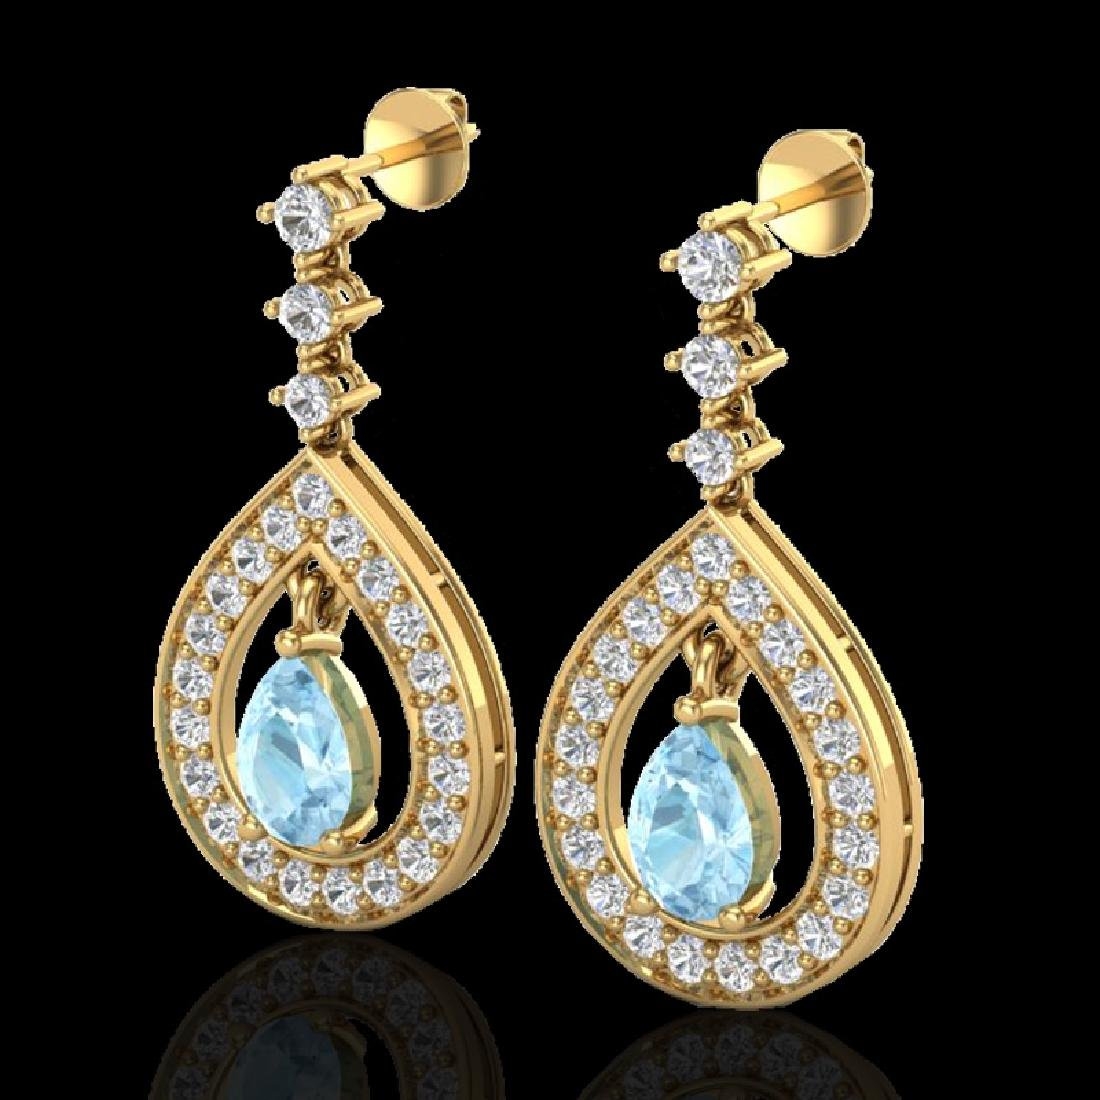 2.25 CTW Aquamarine & Micro Pave VS/SI Diamond Earrings